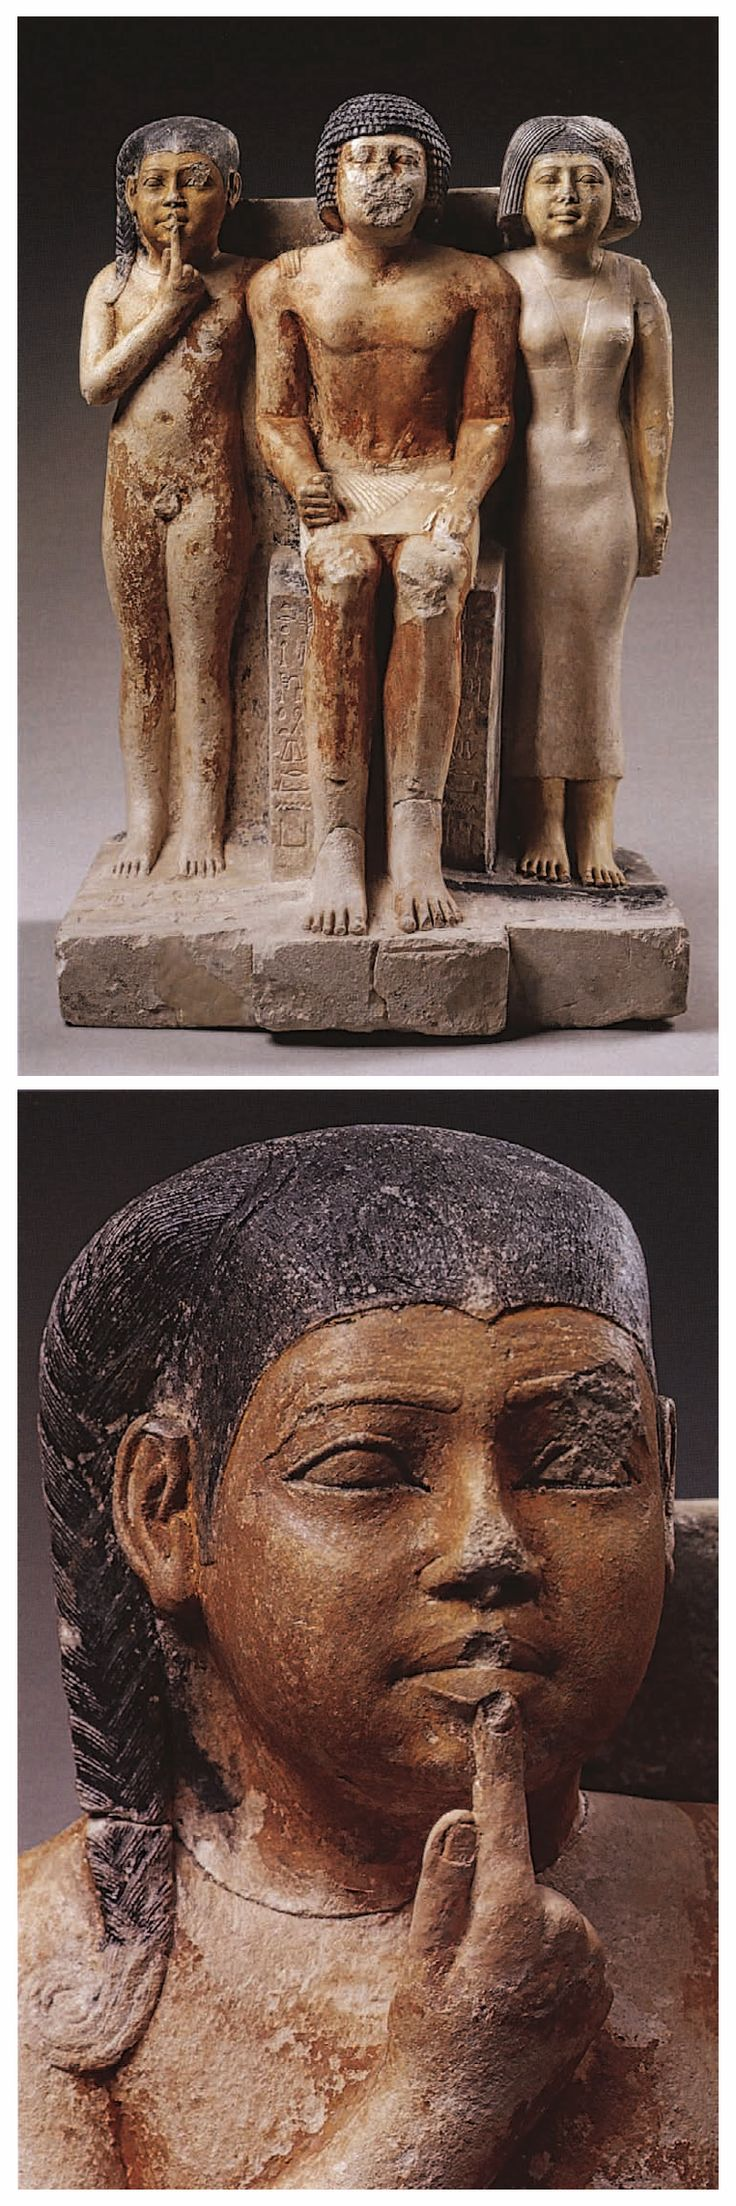 NI-KA-RE, HIS WIFE, AND THEIR SON - Fifth Dynasty, reign of Niuserre or later - Painted limestone H. 57·5 cm - PROVENAN CE : Probably Saqqara, south of precinct of Djoser - Brooklyn Museum of Art